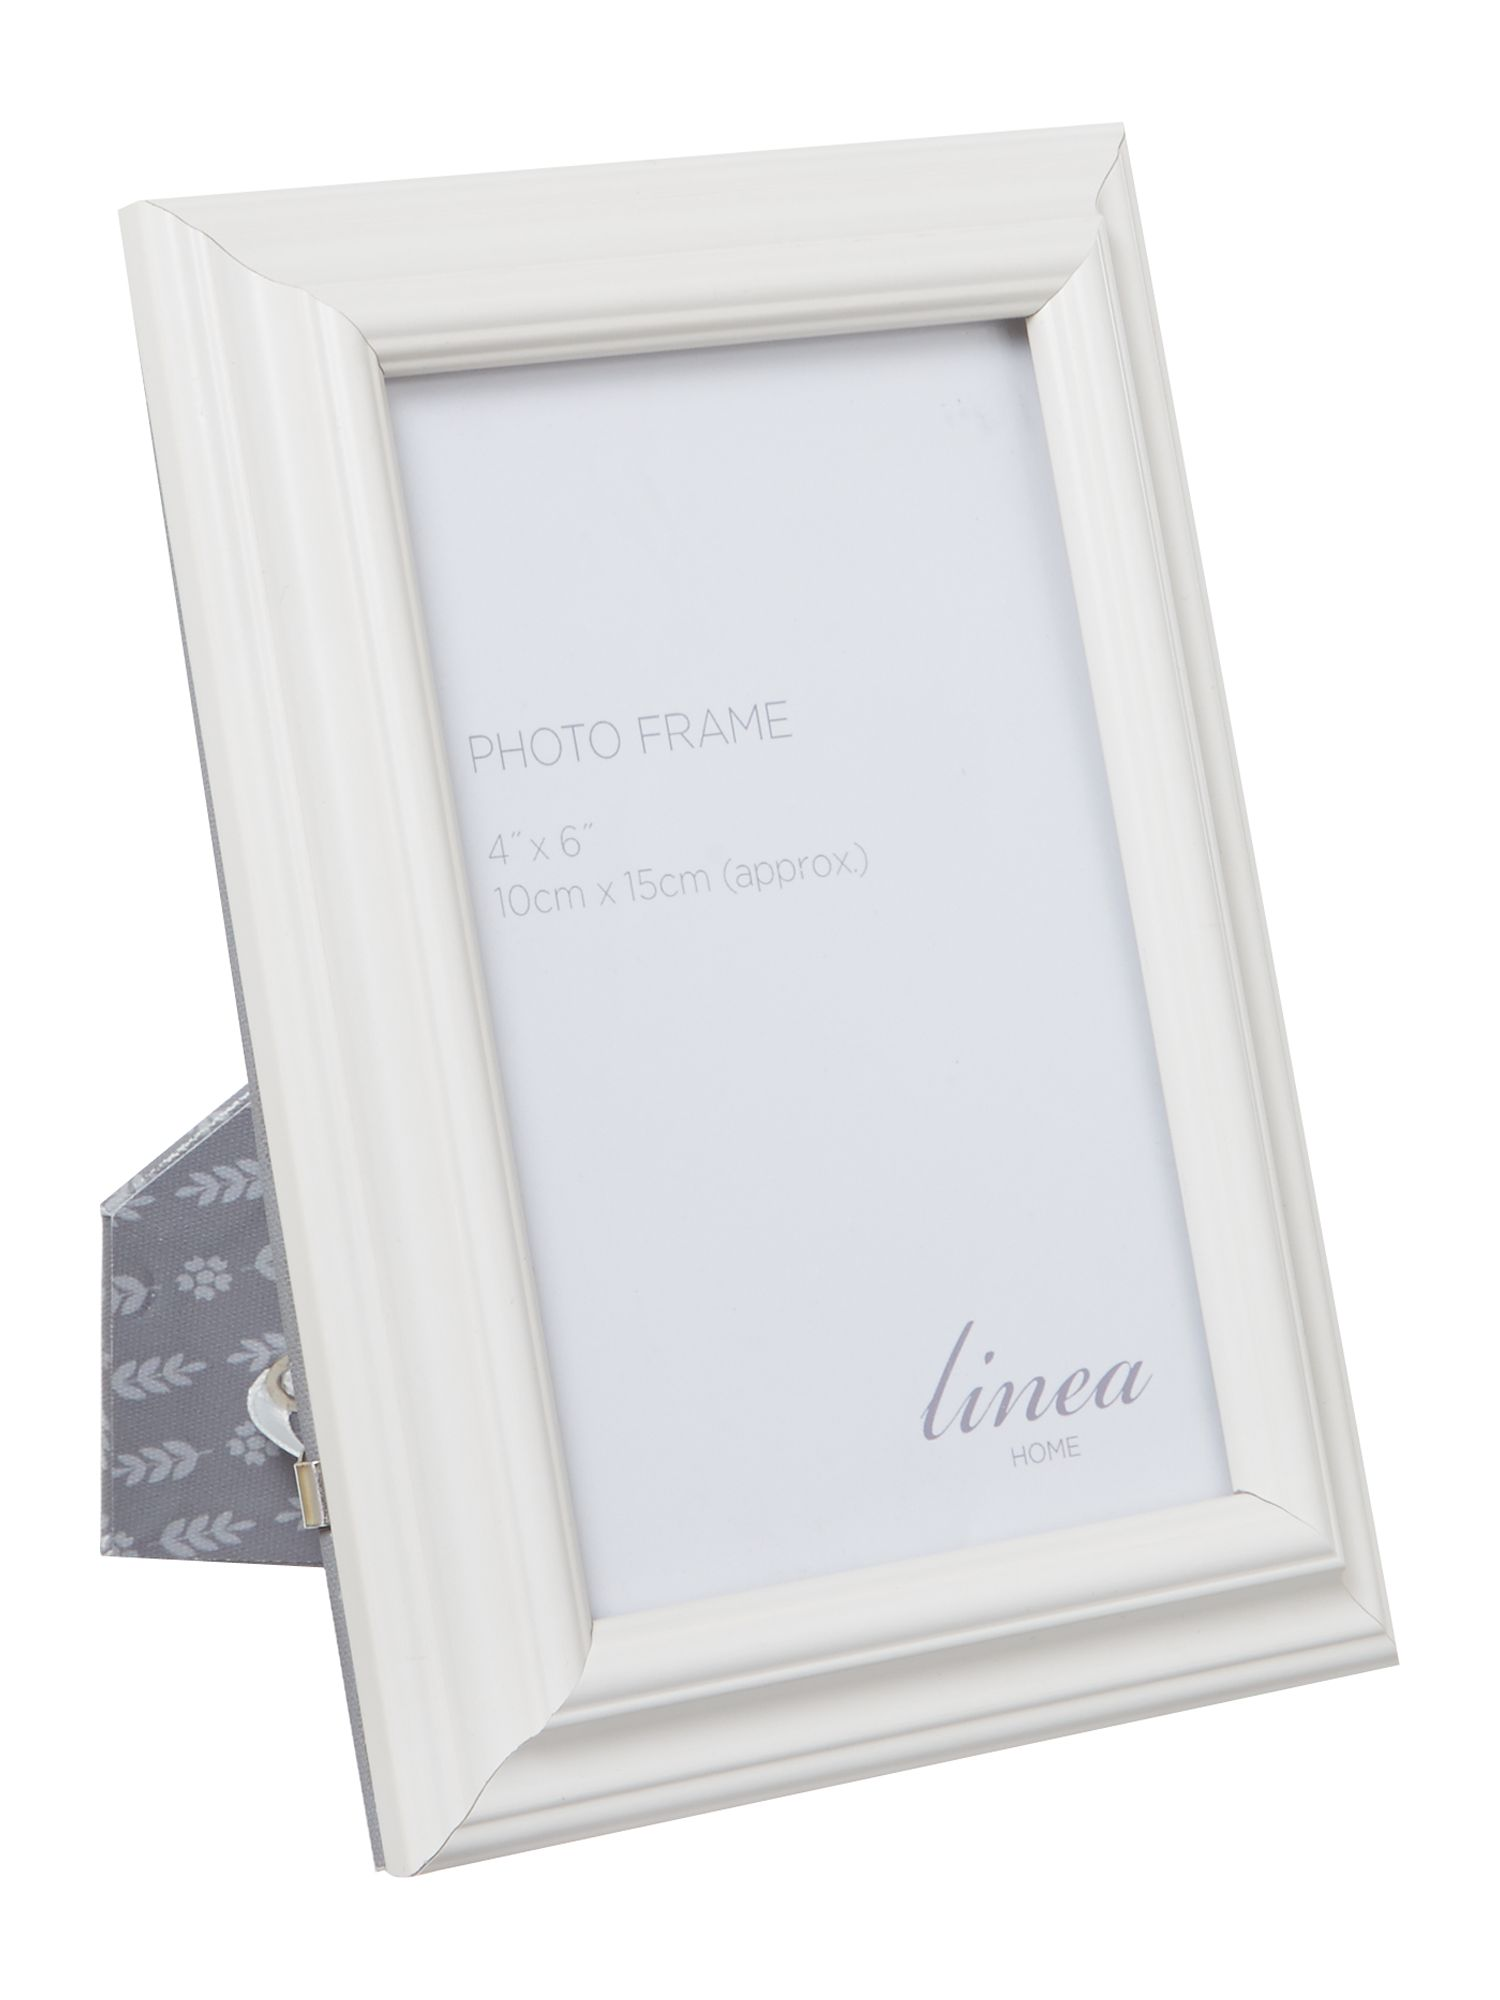 Grey photo frame, 4 x 6